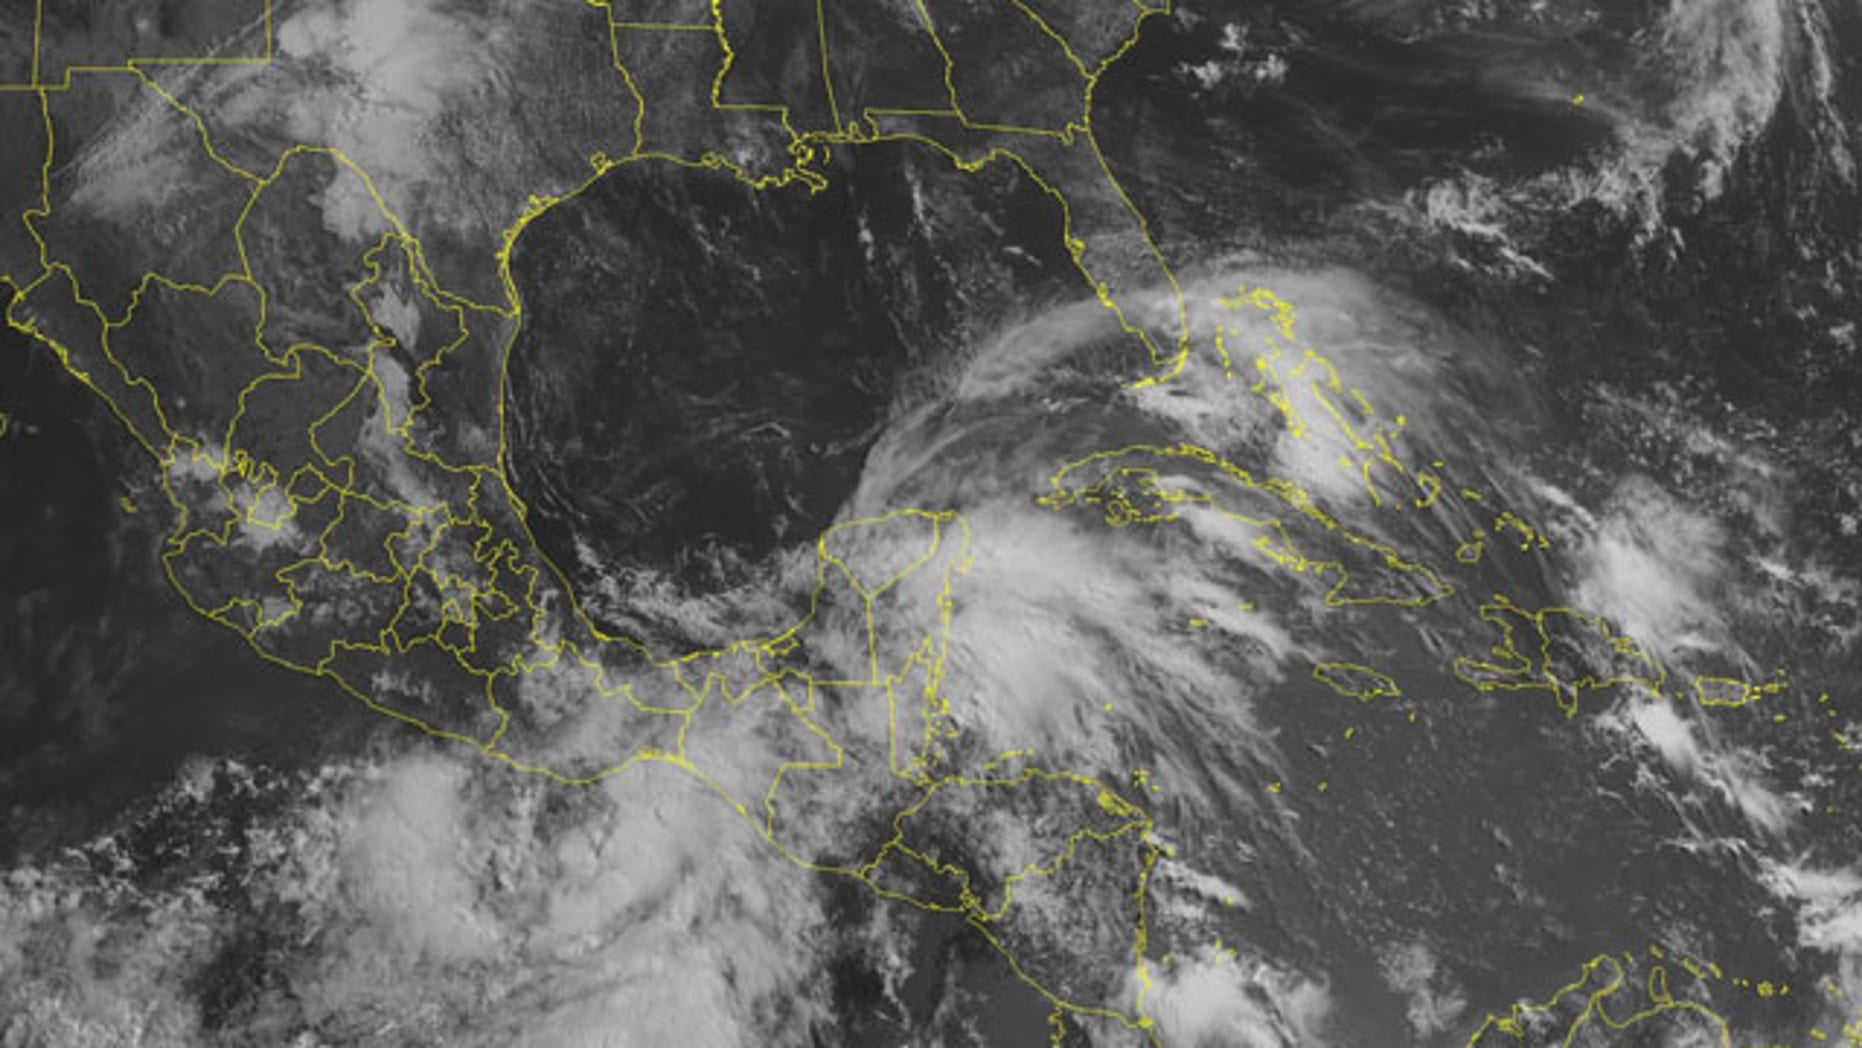 May 28, 2013: A tropical storm has formed in the eastern Pacific Ocean, acquire strength and move toward Mexican coast, according to the National Hurricane Center.